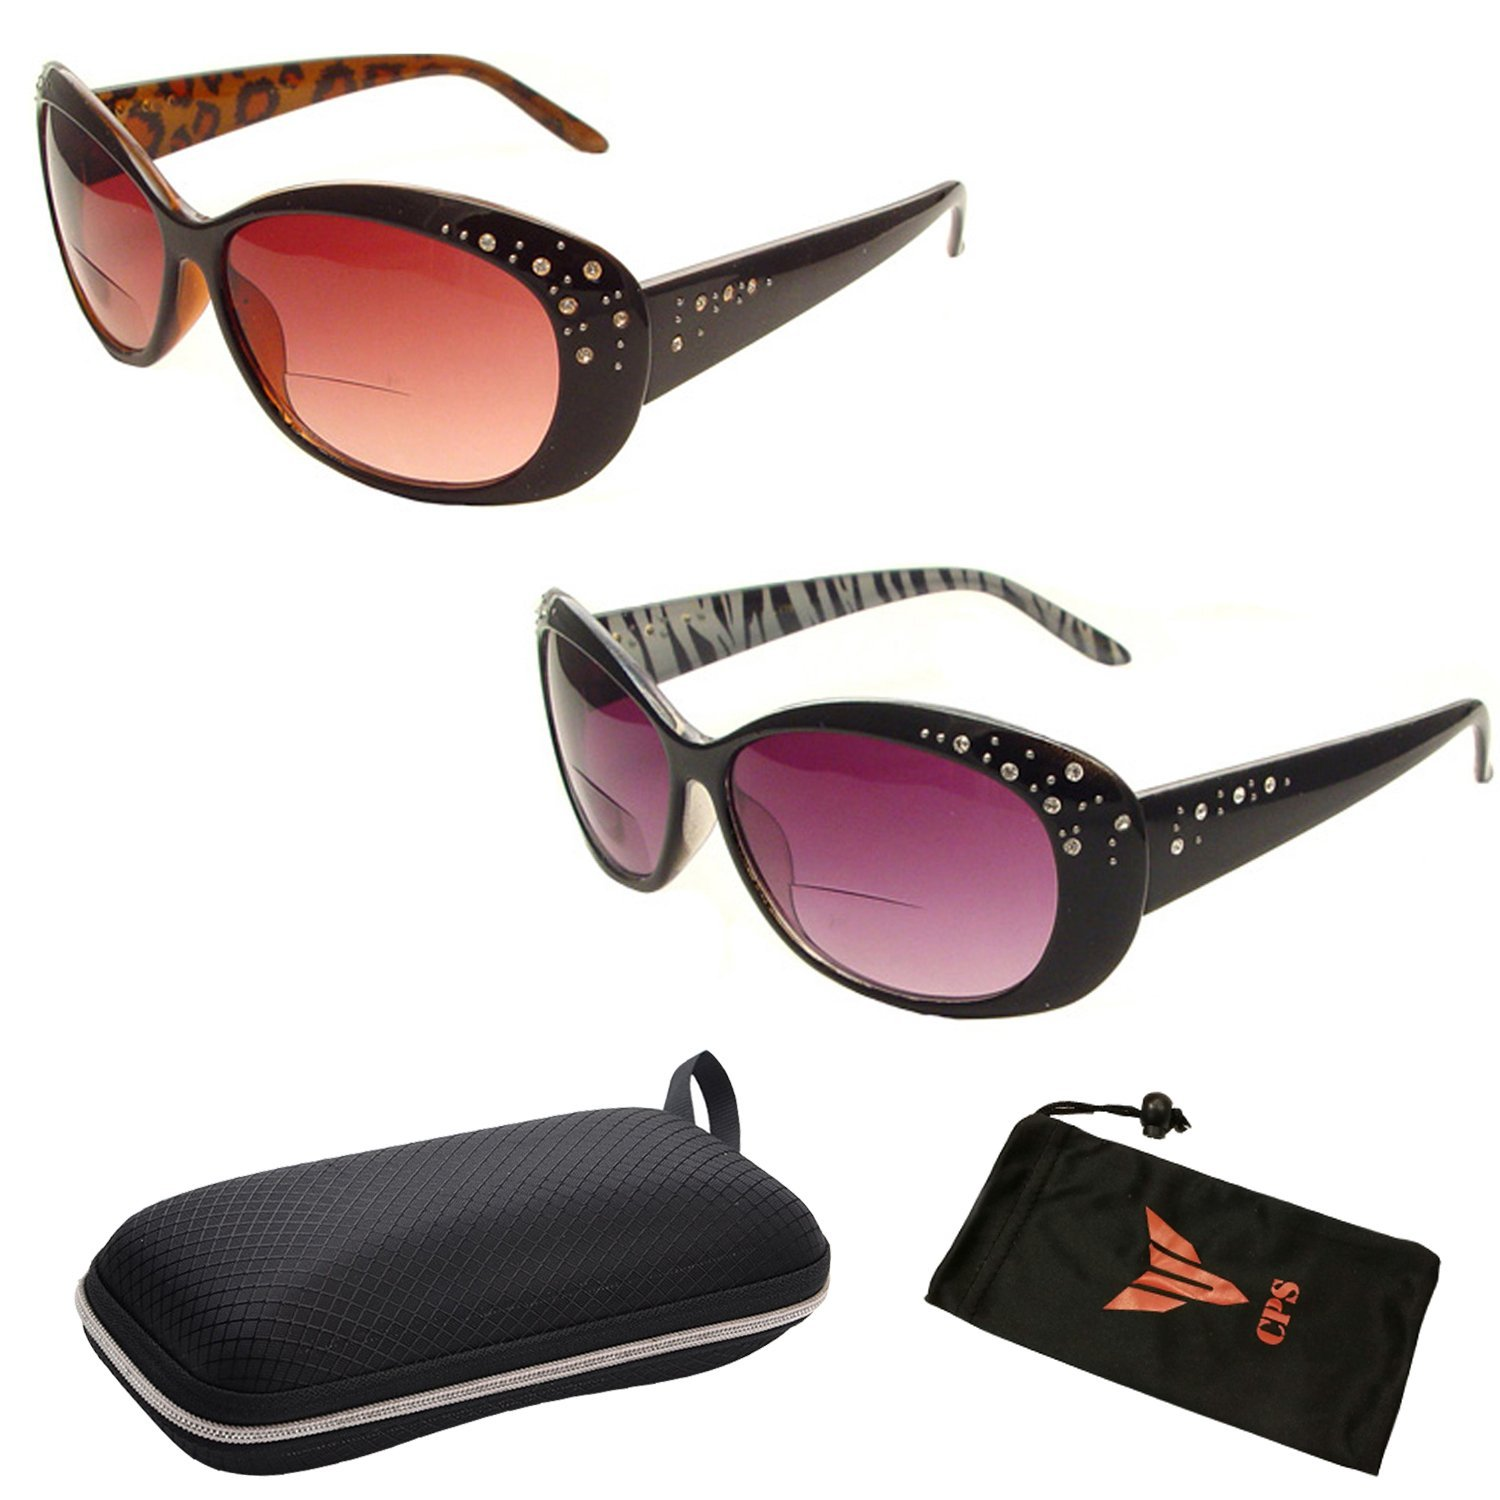 Premium Designer Fashion Shape BIFOCAL Sun Readers for Women Men + Free Accessories Storage